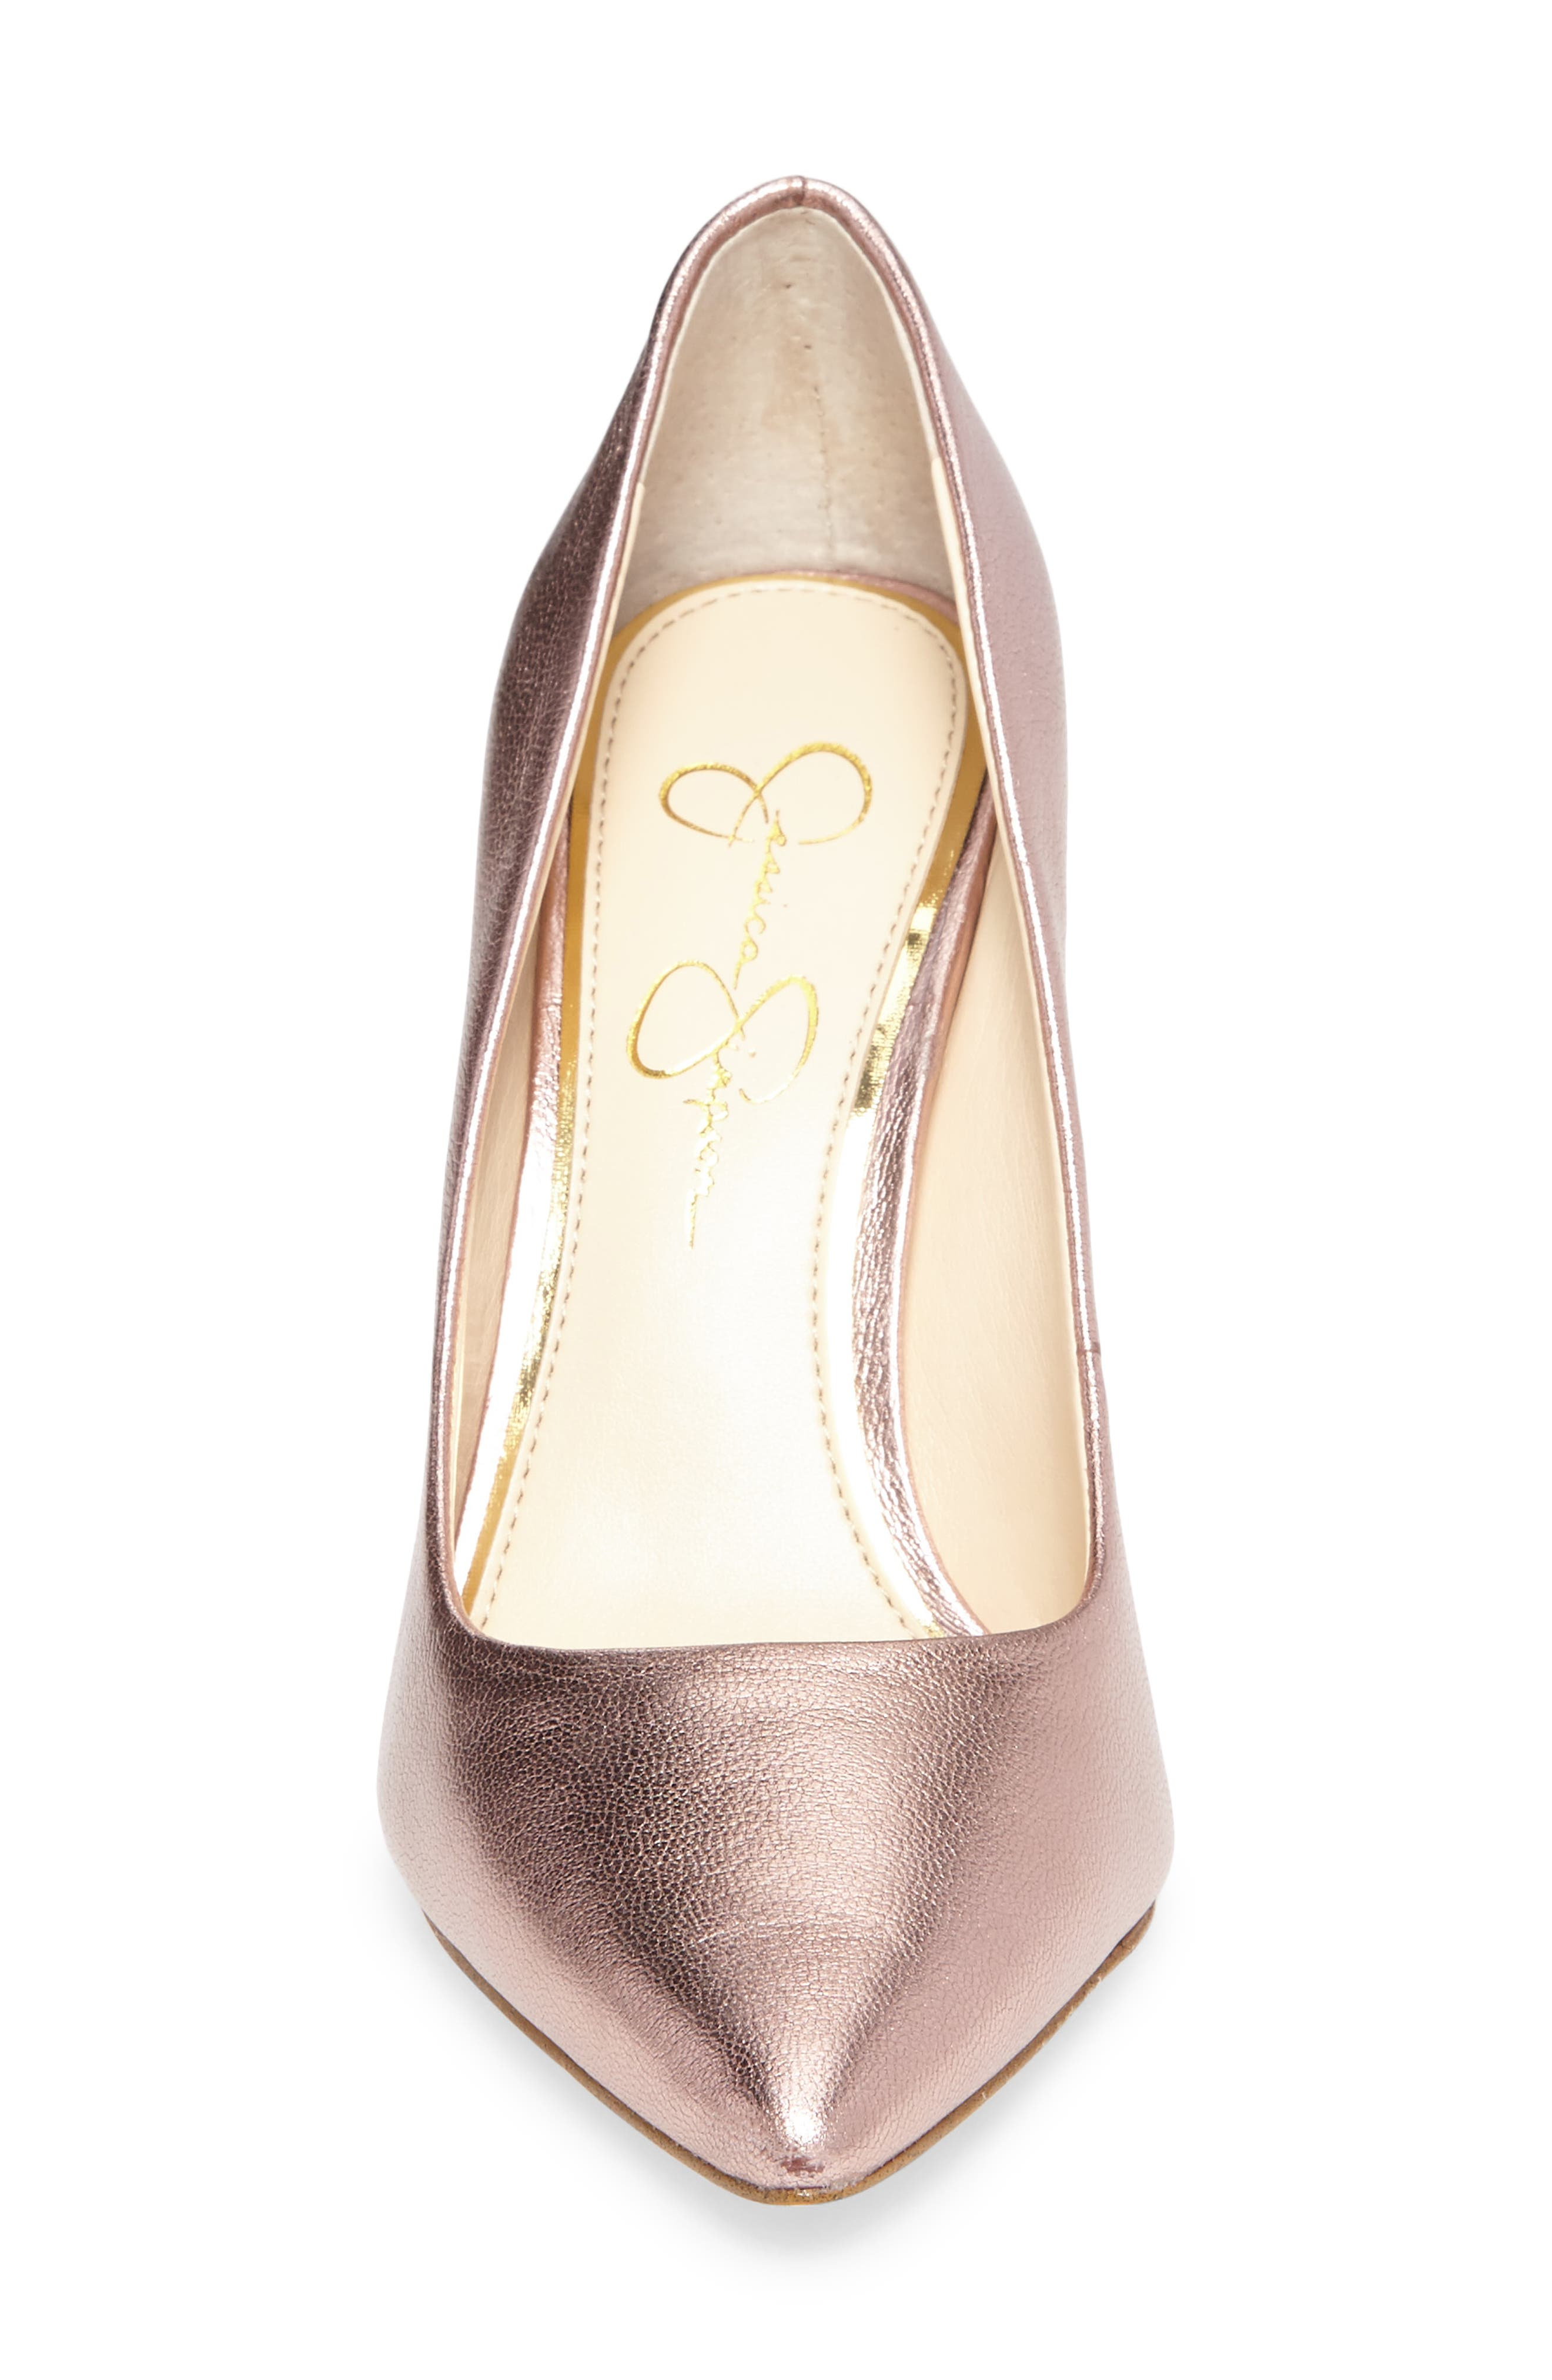 Praylee Pointy Toe Pump,                             Alternate thumbnail 4, color,                             Dolly Pink Leather